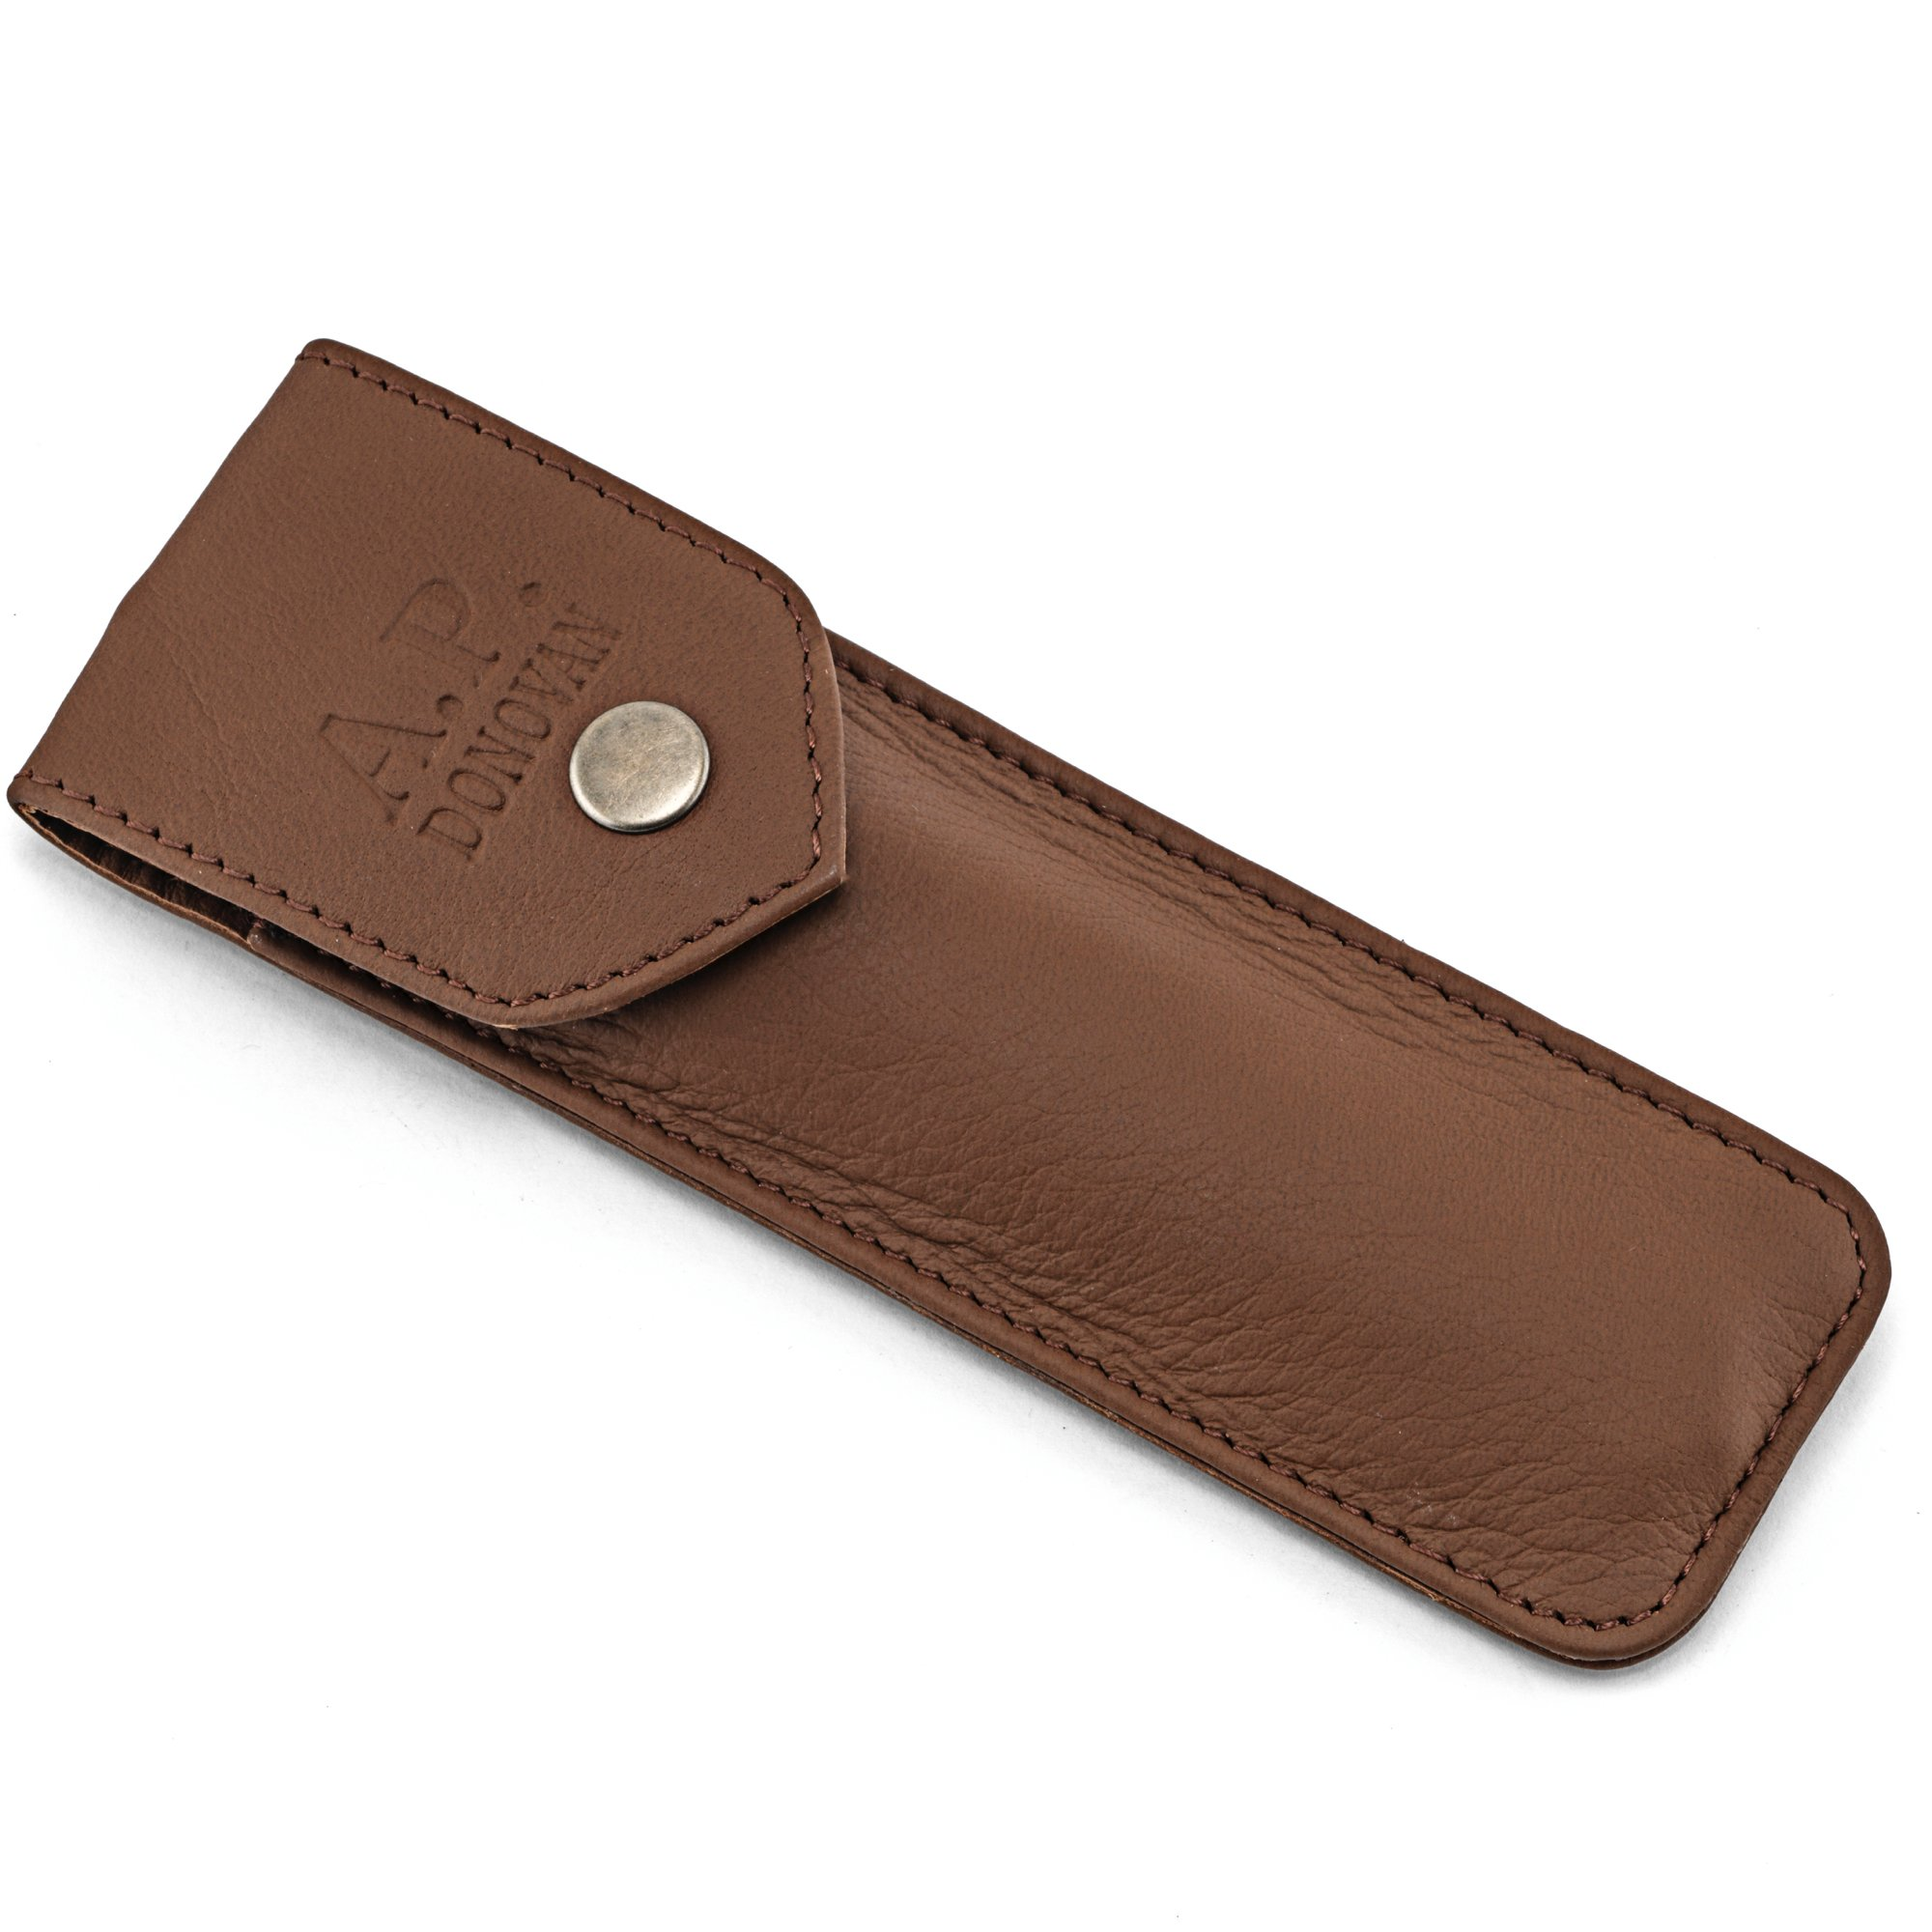 A.P. Donovan - Leather Case for Straight Razor - travel case - leather bag